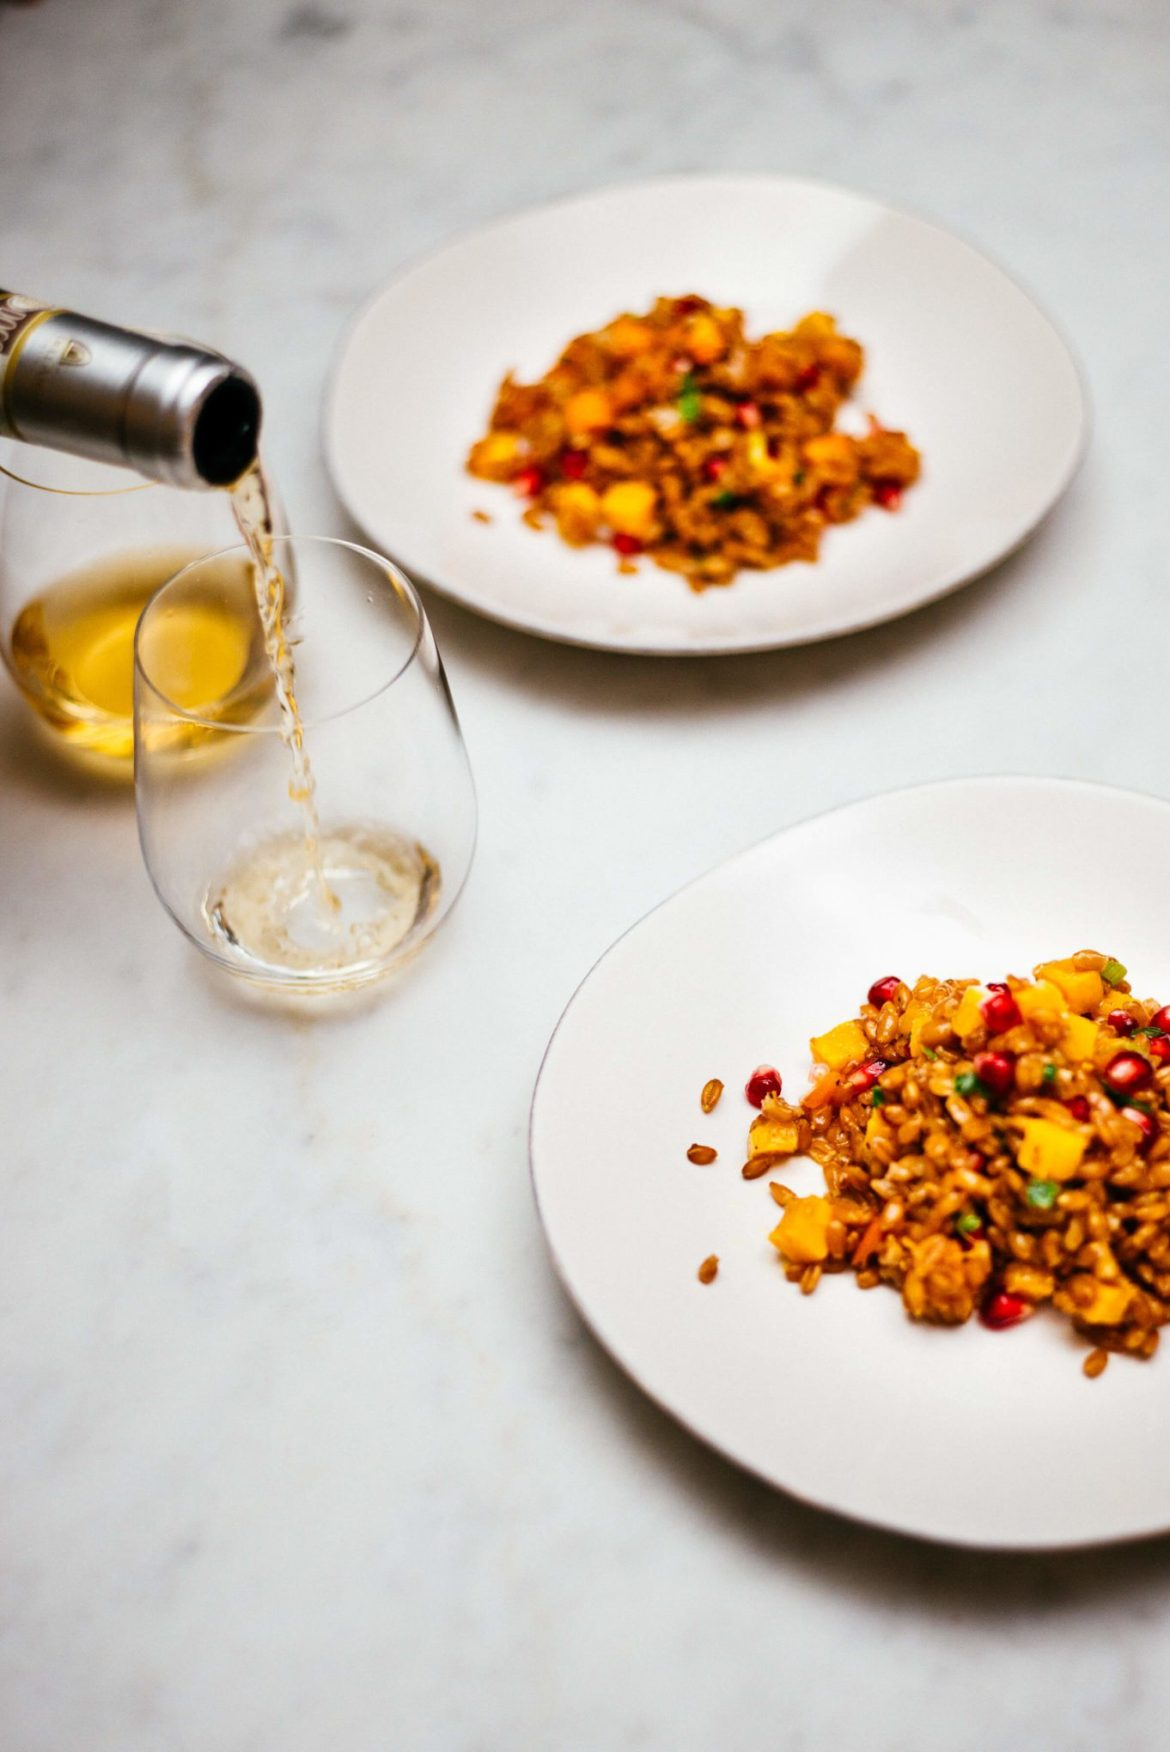 This wine is perfect with the autumn farro salad with an olive oil dressing